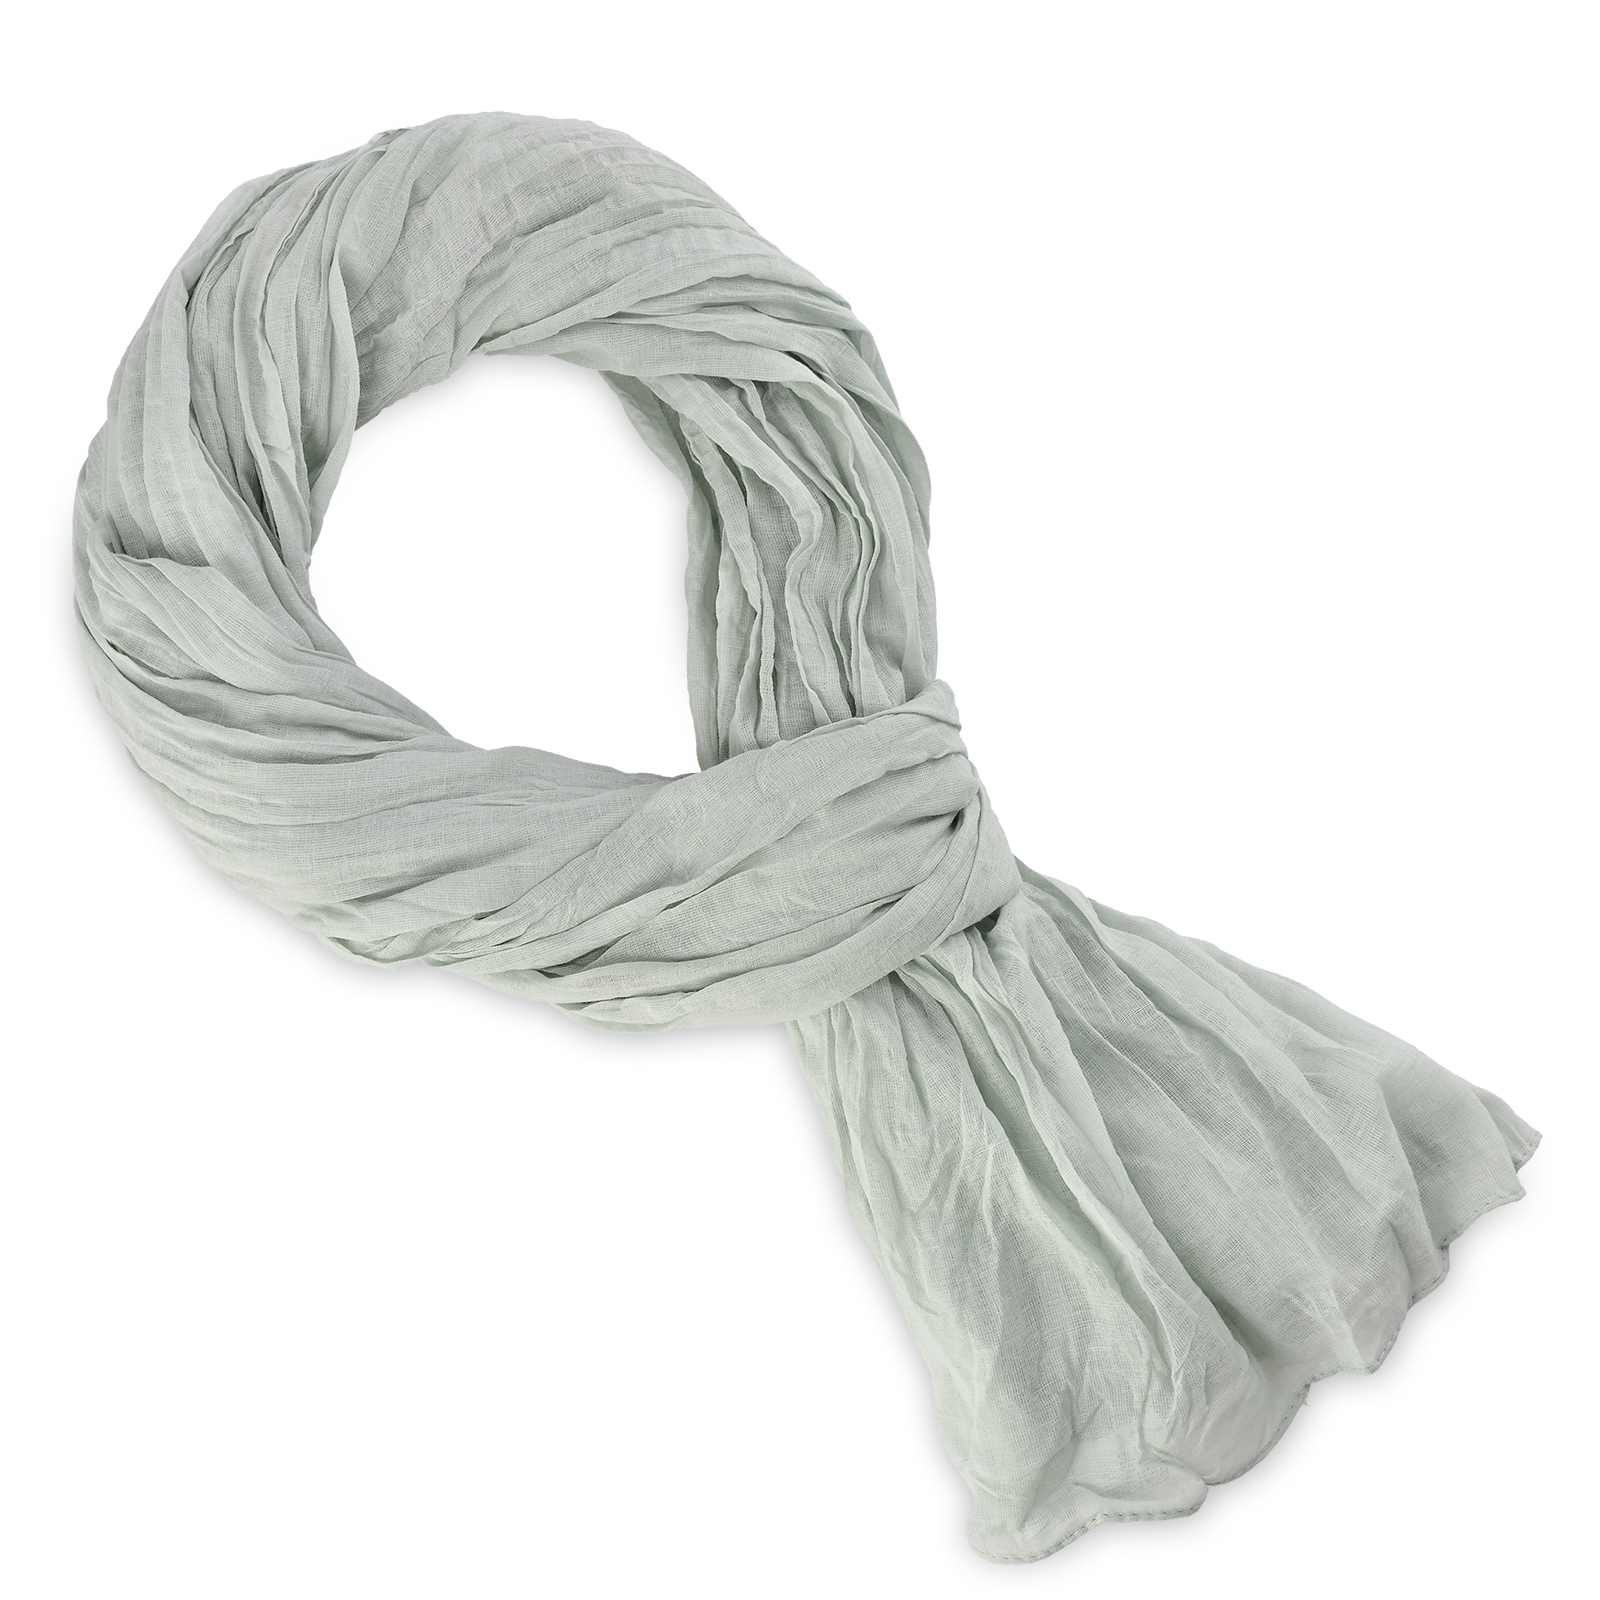 AT-02194-F16-cheche-coton-gris-argent-uni